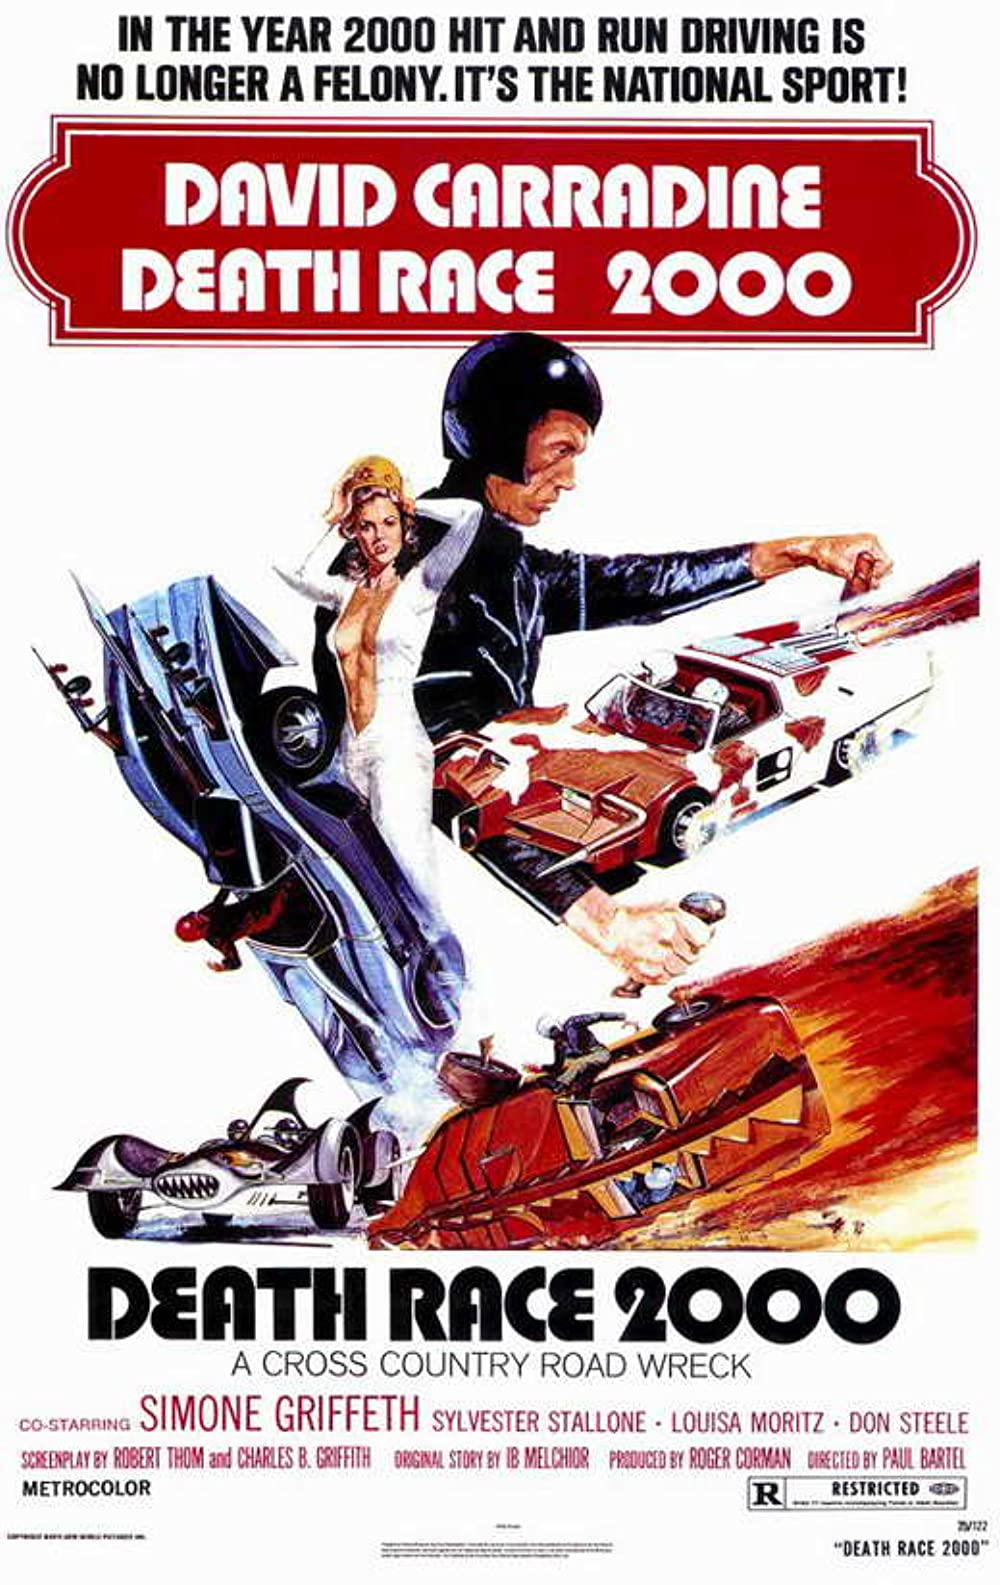 Death Race 2000: Directed by Paul Bartel. With David Carradine, Simone Griffeth, Sylvester Stallone, Mary Woronov. In a dystopian future, a cross country automobile race requires contestants to run down innocent pedestrians to gain points that are...